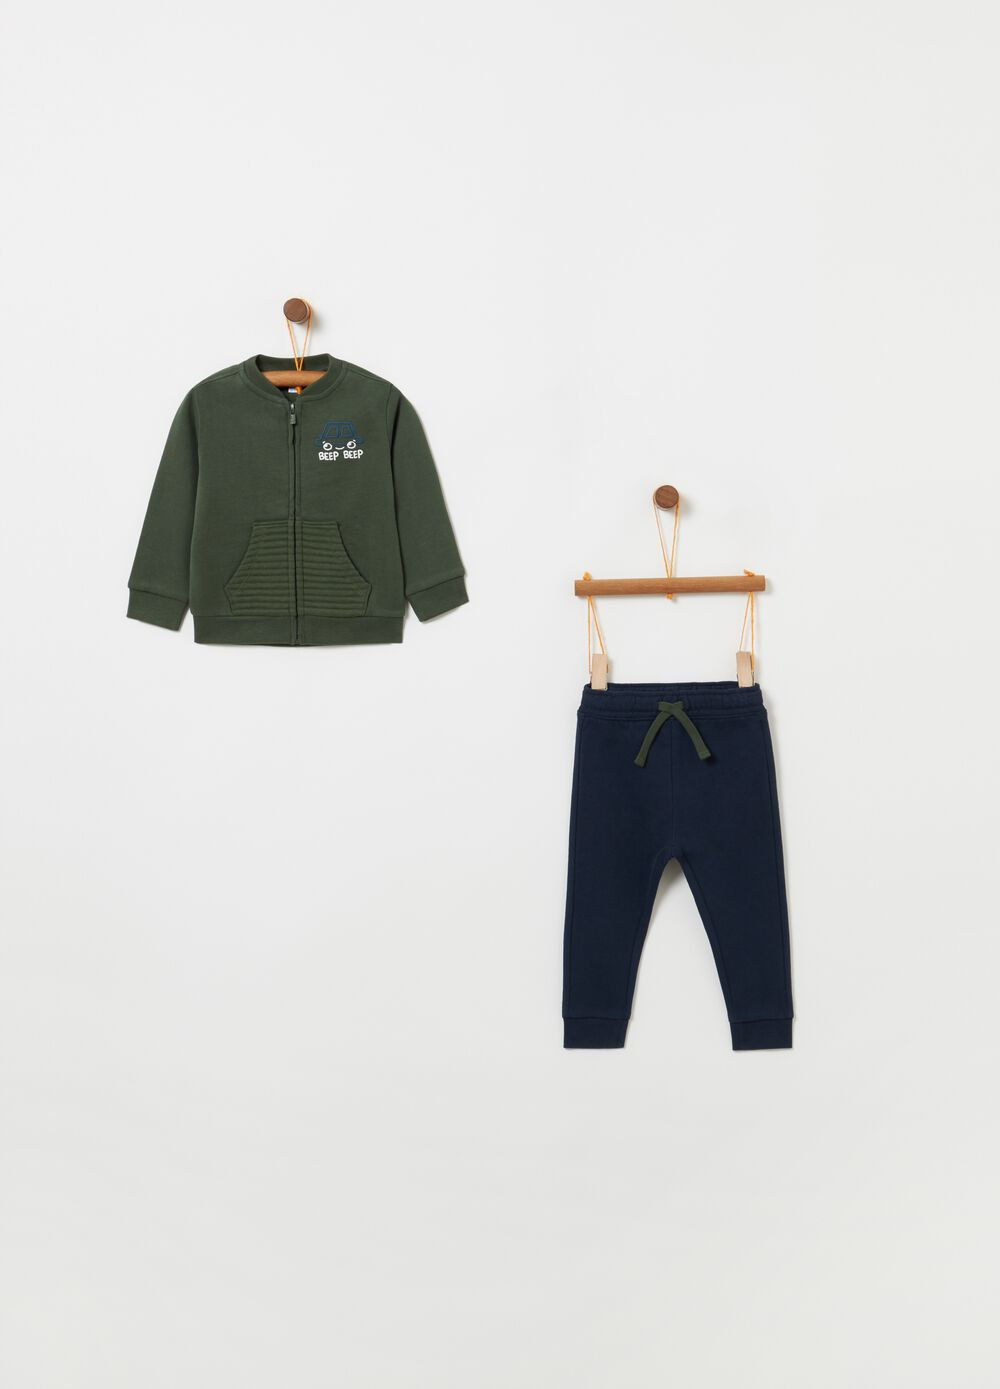 Jogging set with top and trousers with drawstring